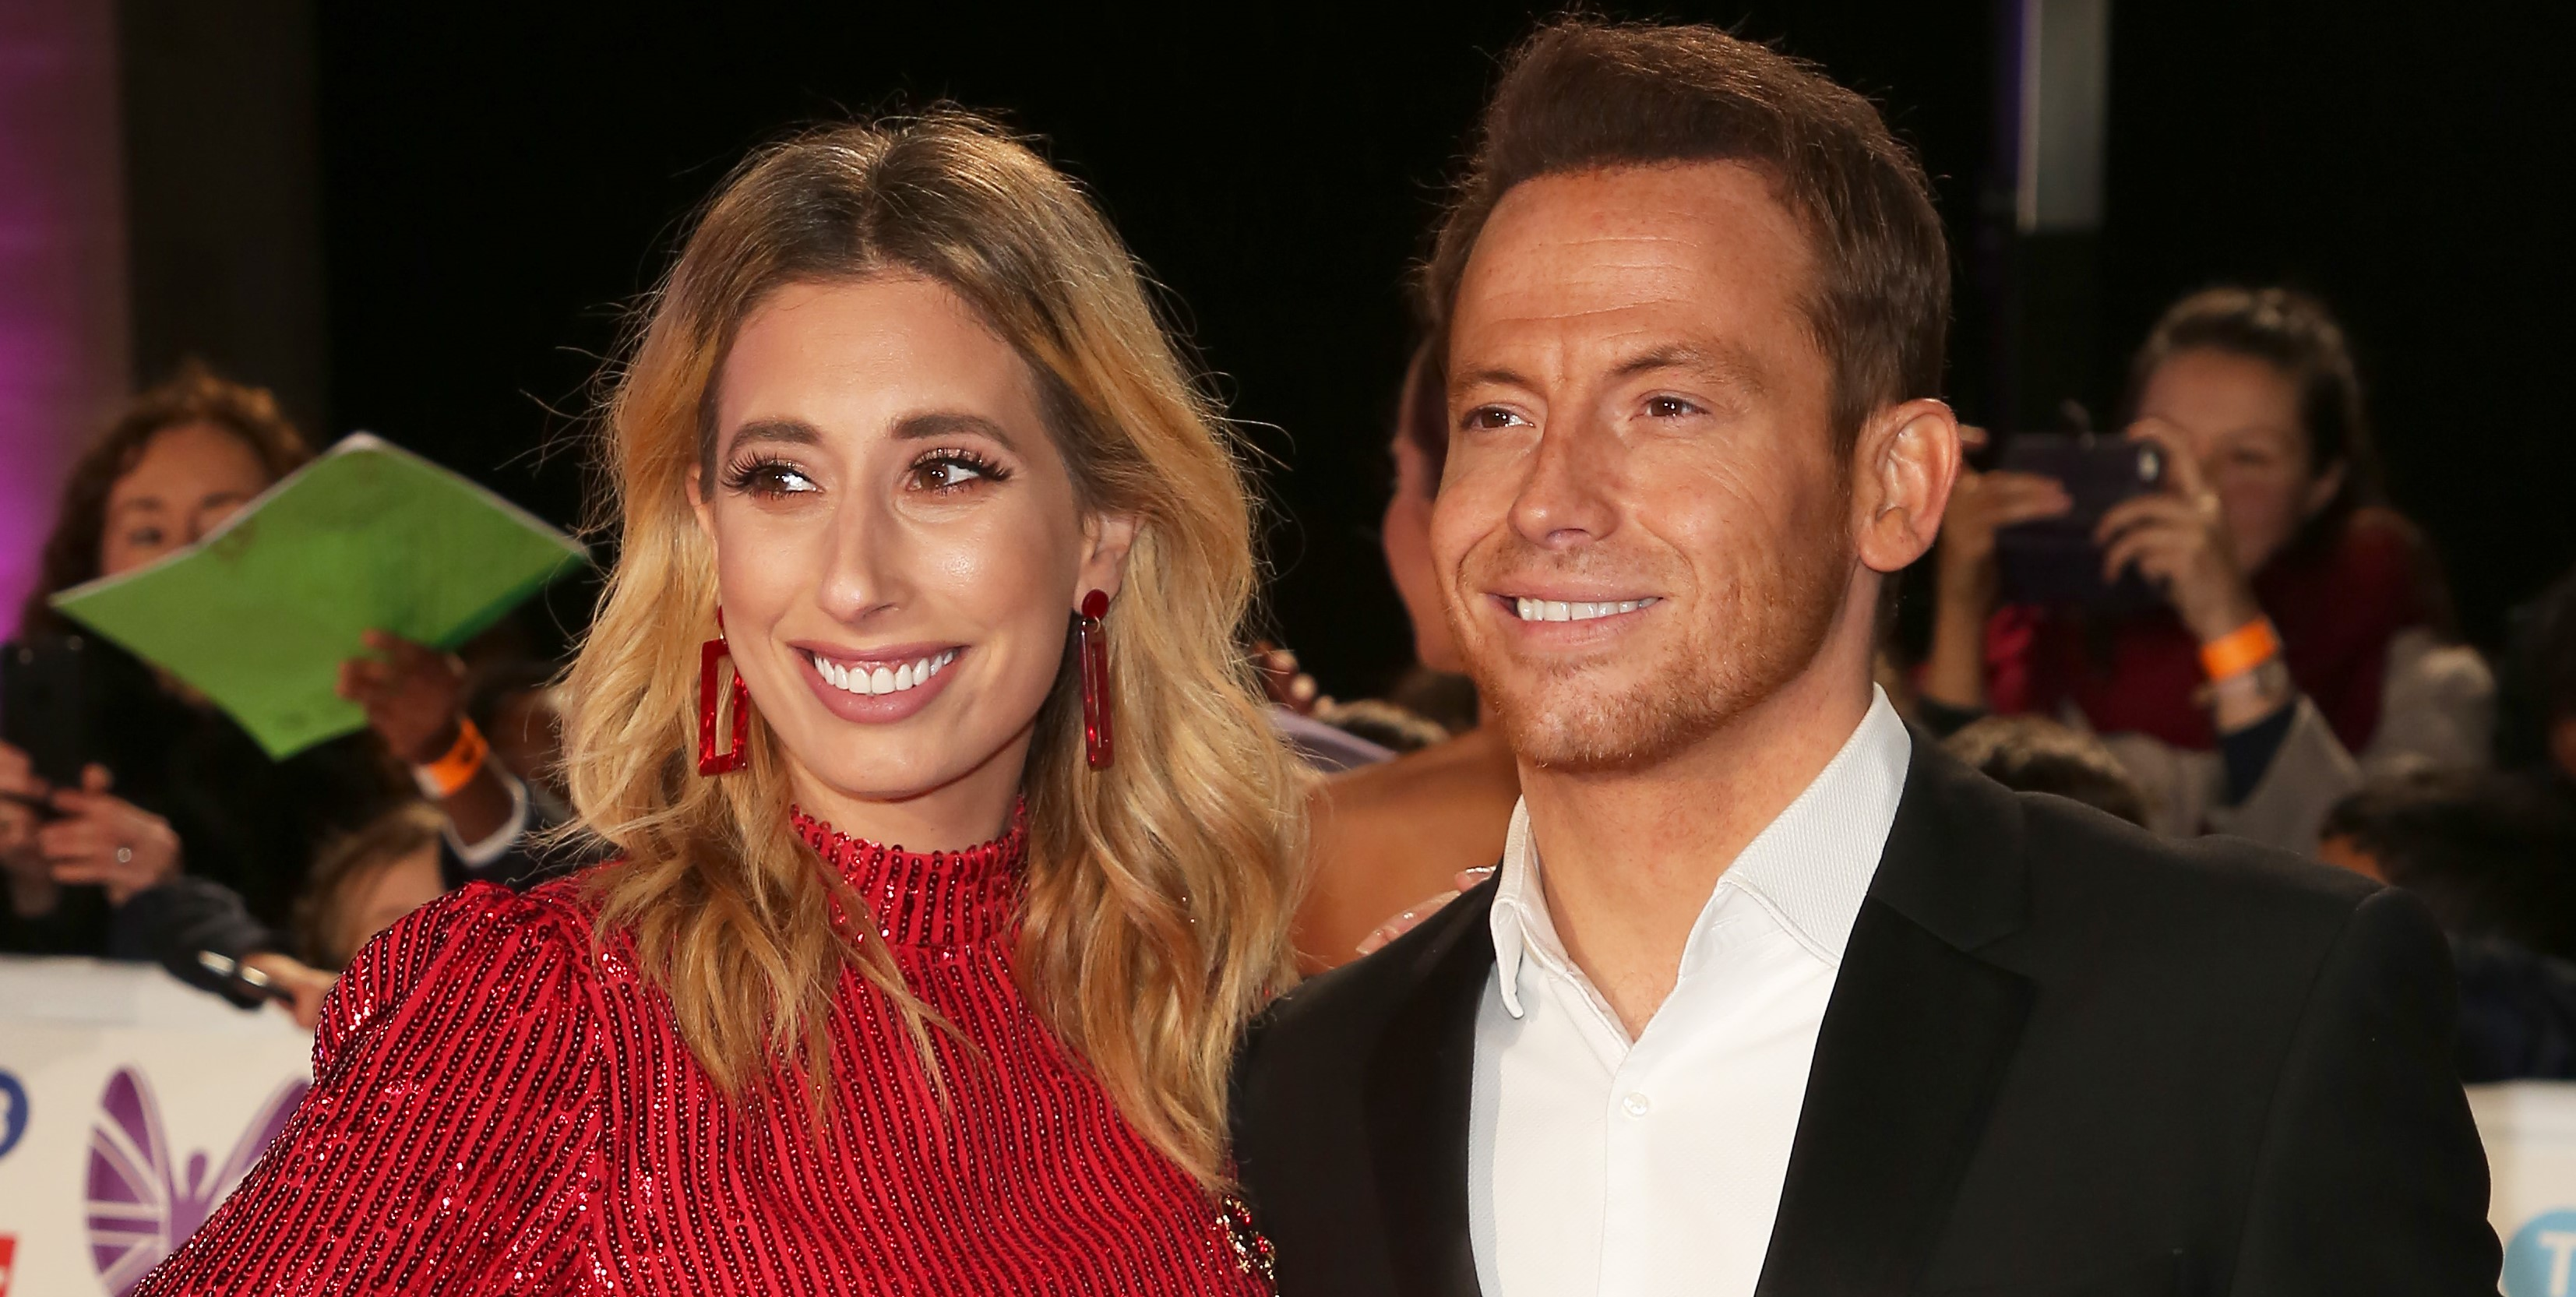 Fans convinced Stacey Solomon and Joe Swash have secretly got married after latest family photo